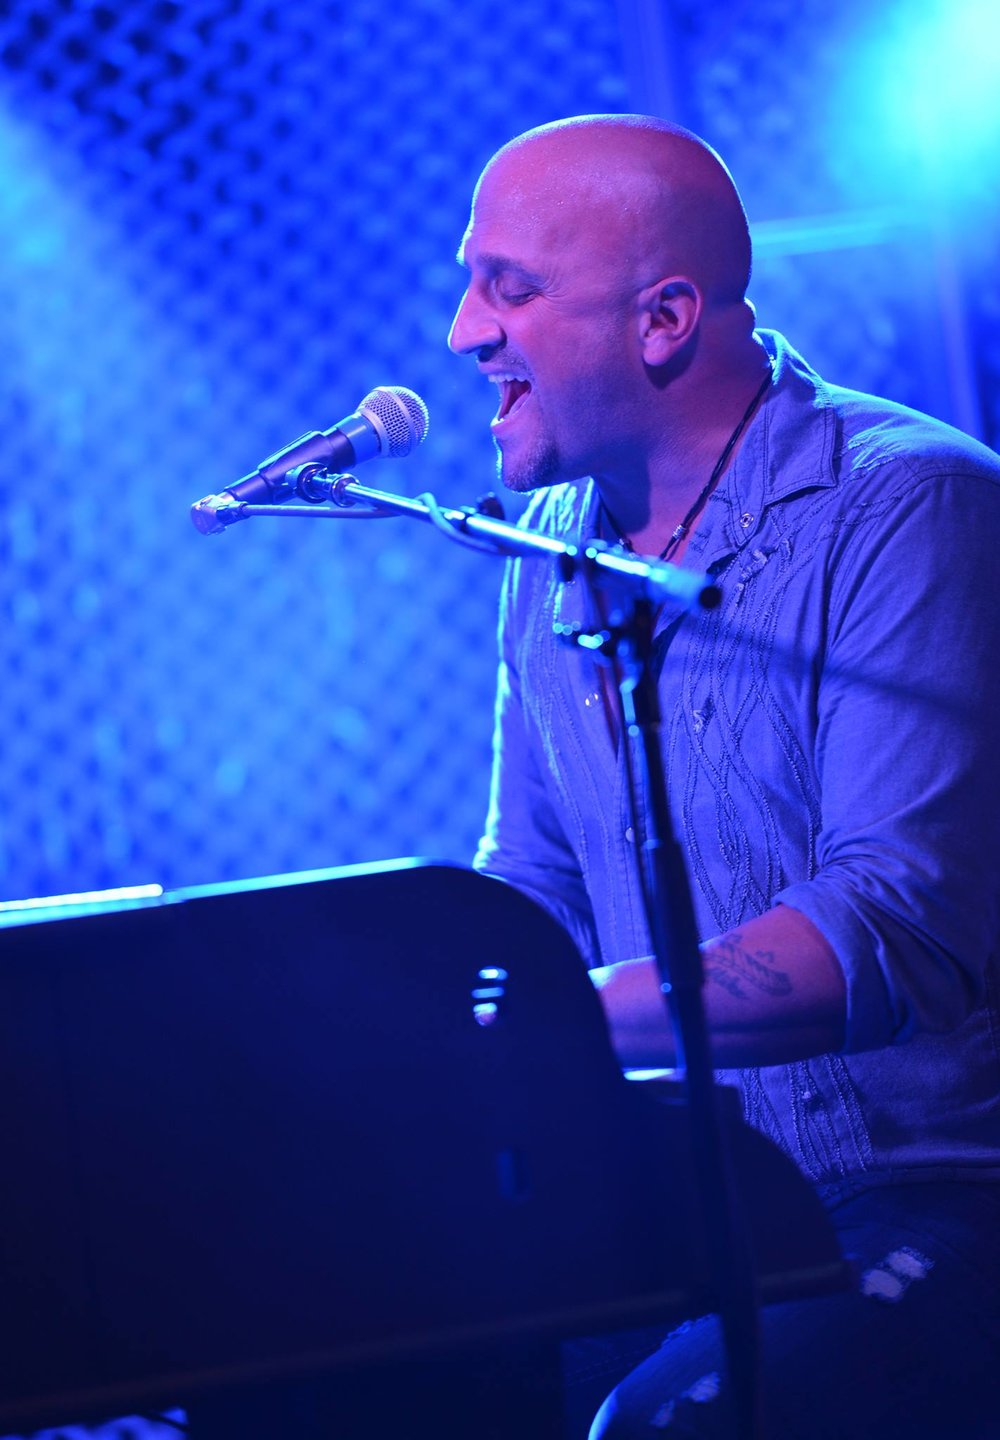 "Mike DelGuidice Lead Vocals/Piano - Front man Mike DelGuidice, living a dream. After 15 years of playing Billy Joel's music in his band Big Shot, Mike DelGuidice is now on tour with Billy Joel.  In October of 2013, Mike was hired by Billy Joel himself. And now you can see Mike on tour with Billy Joel all over the US & world in major arenas and stadiums including ever month at the iconic Madison Square Garden playing acoustic guitar and background vocals.  On Billy Joel's recent SiriusXM Channel you can hear Billy talking about Mike and how much he sounds just like him -  ""That's me...I know my voice...That's a tape...but it was this guy...Mike DelGuidice."" - Billy Joel Go here to listen - http://youtu.be/Z6rAMaJo7SU Mike is also a well-known Long Island Musician/ Singer/Songwriter and has released 2 of his own original CDs."